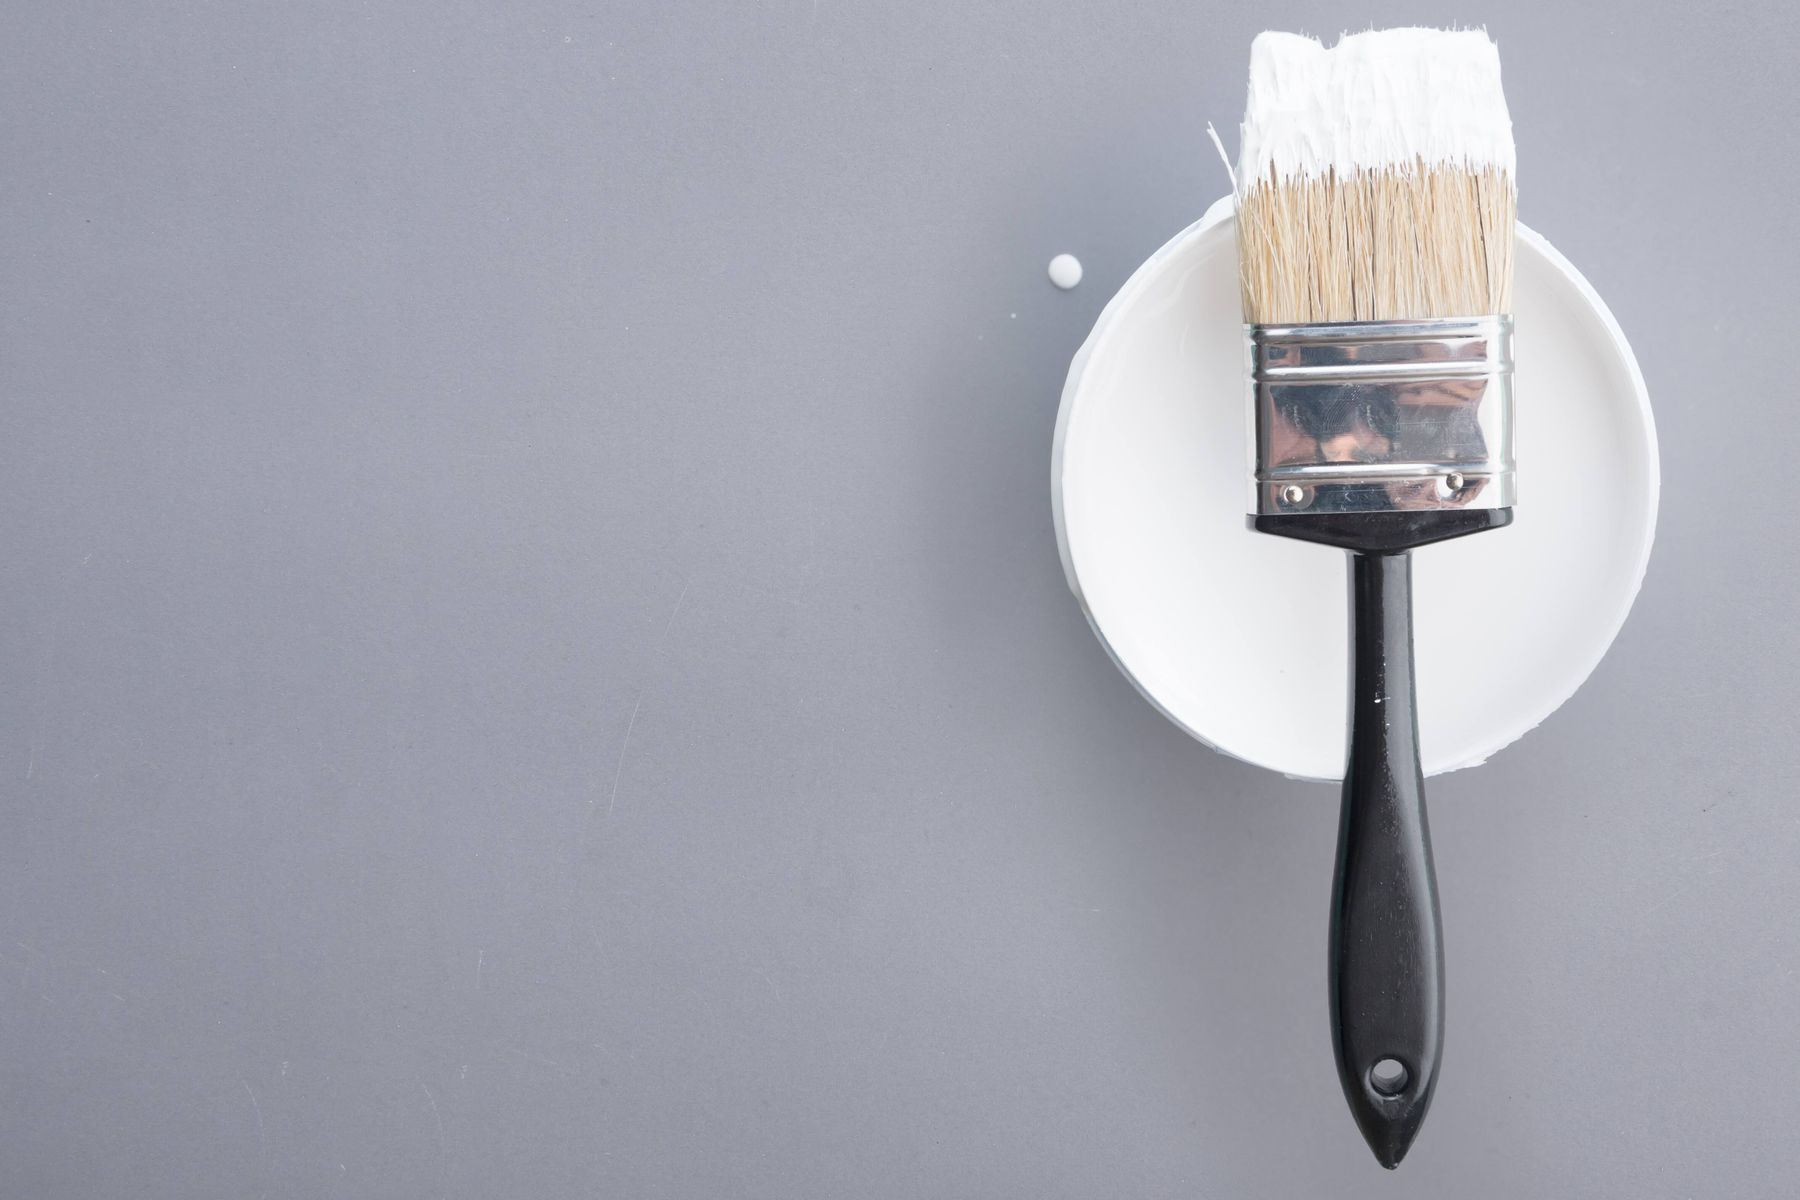 house painting ideas - white paintbrush on pot of white paint with grey background